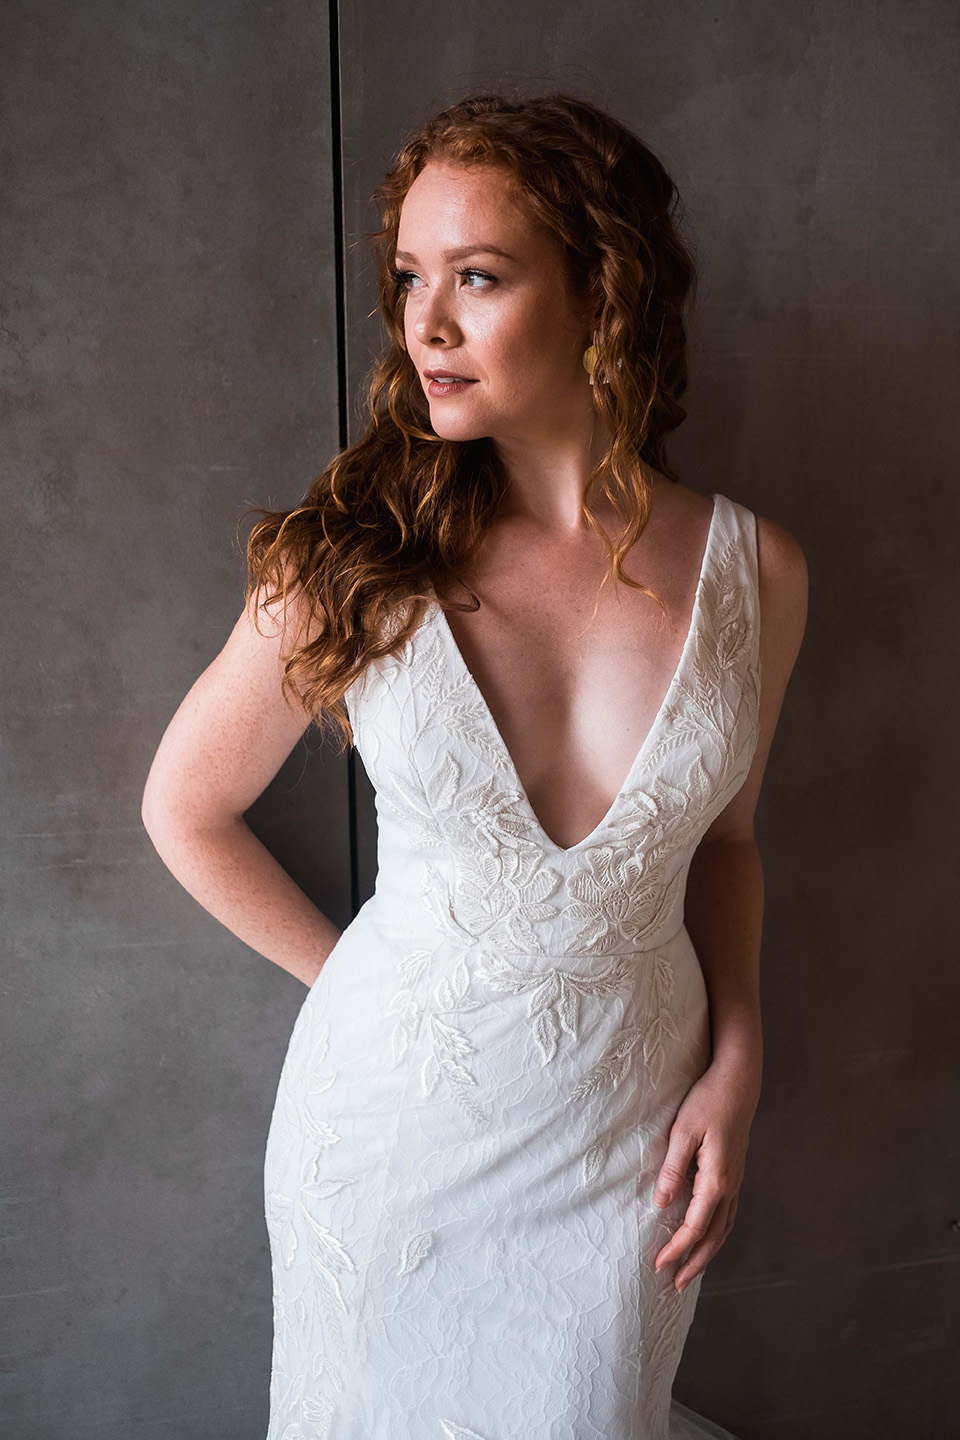 WSPCo-Gather-Greene-Rebecca-Schoneveld-Bridal-296_embroidery_lace_wedding_gown_fitted_romantic_wedding_gown.jpg